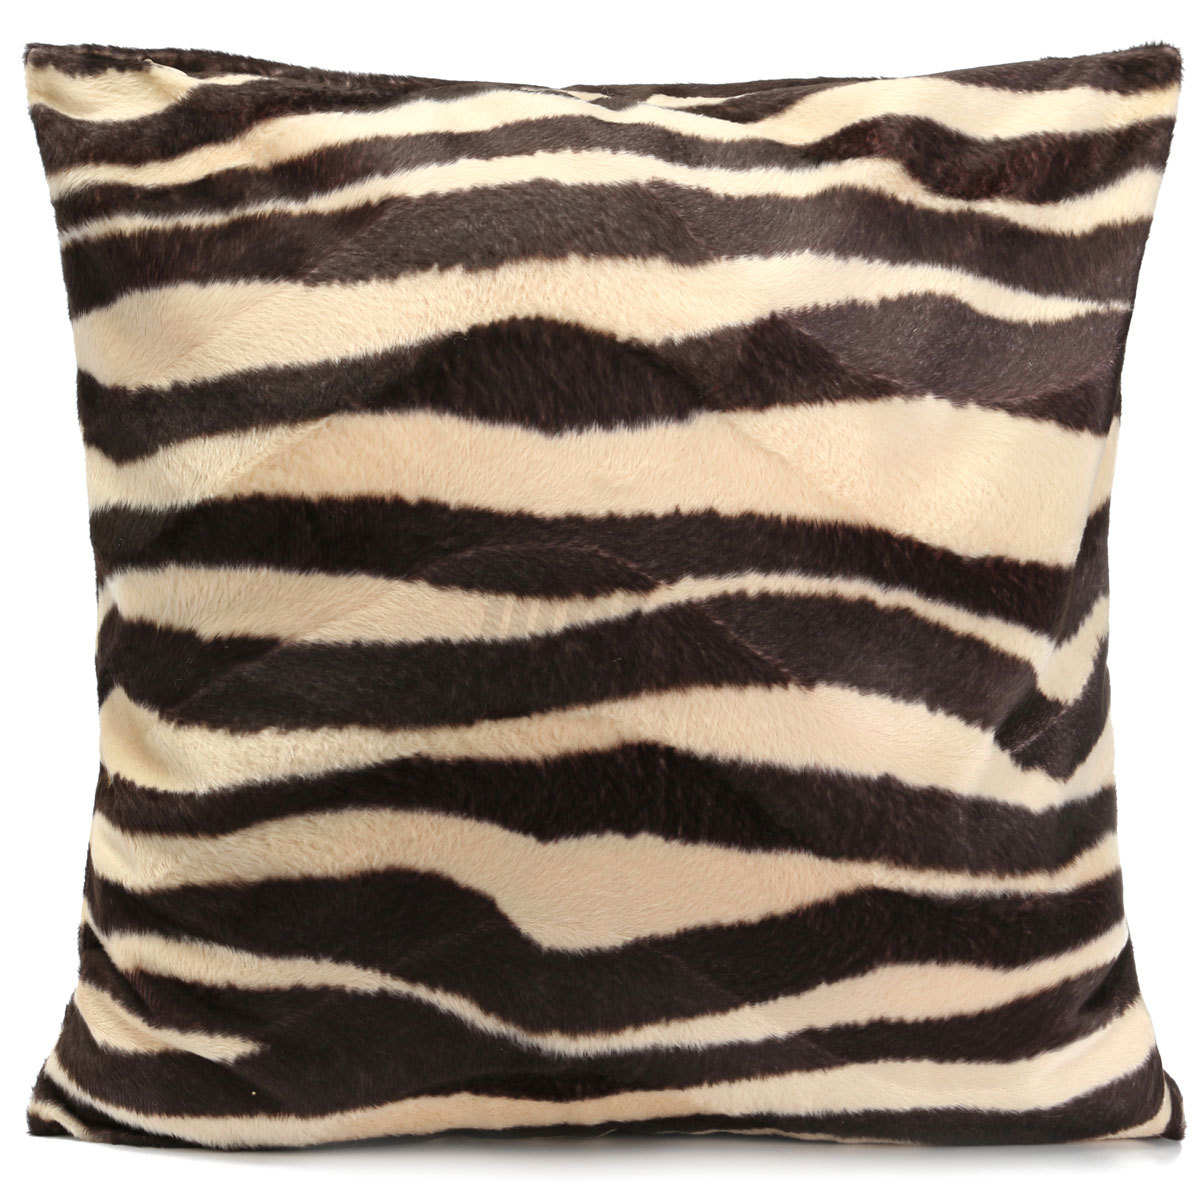 Animal Print Pillows Couch : Fashion Pillow Cases Square Animal Print Leopard Zebra Sofa Car Cushion Covers eBay